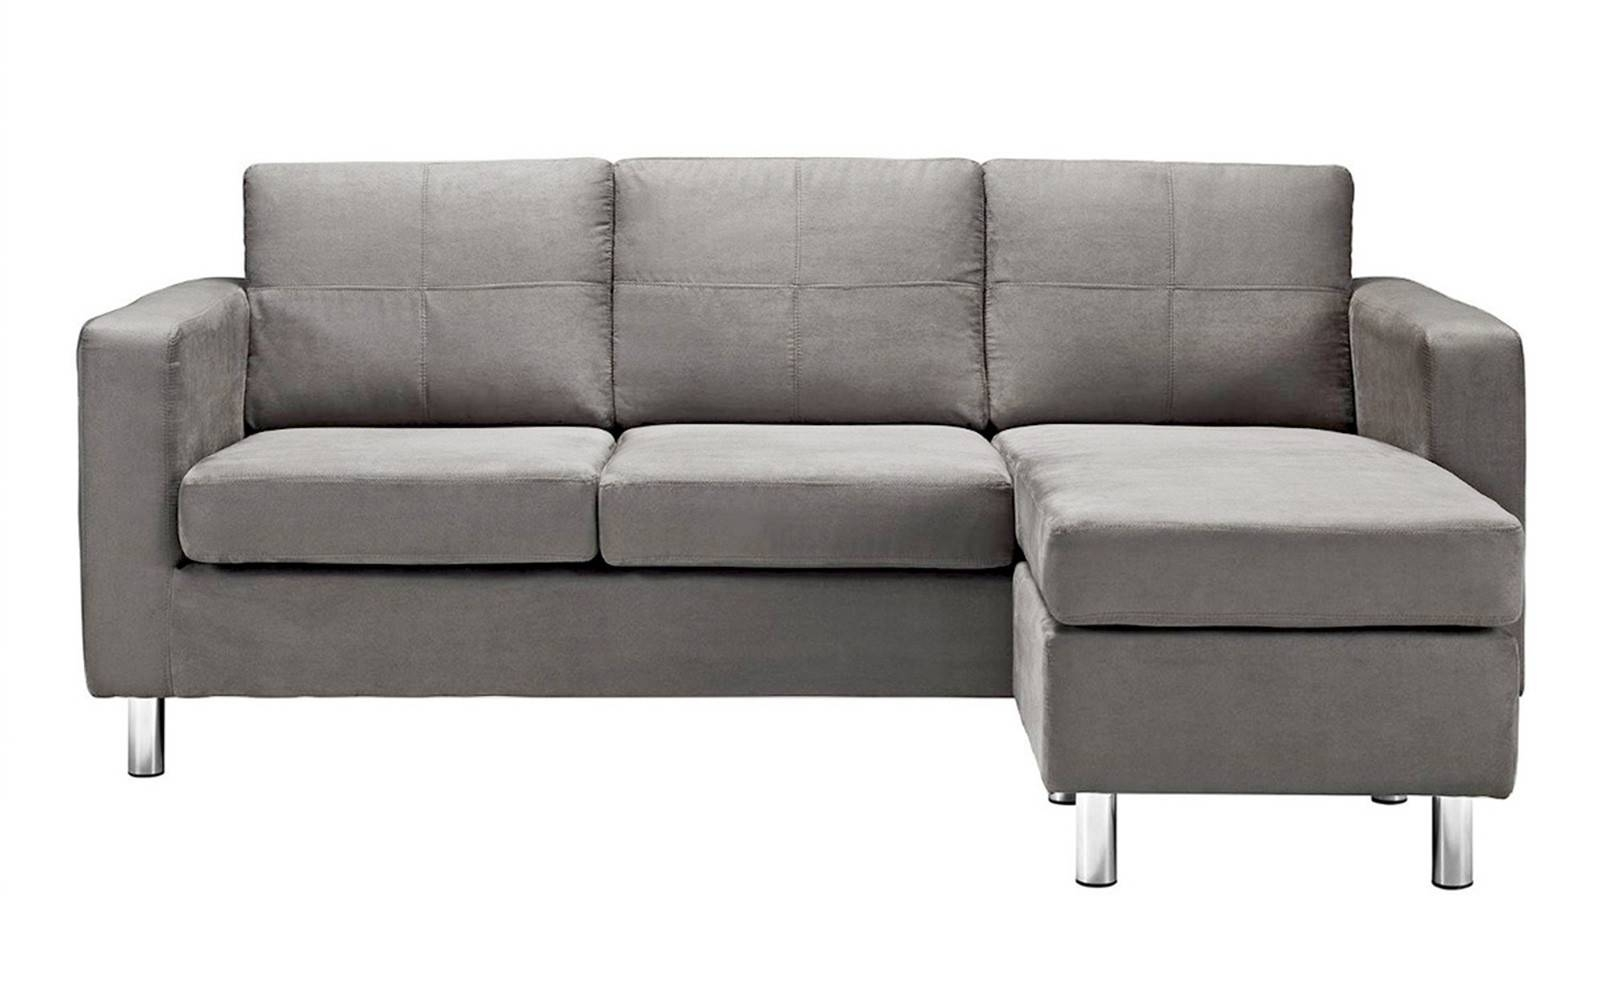 Modern Reversible Small Space Configurable Microfiber Sectional with Modern Sectional Sofas for Small Spaces (Image 13 of 25)